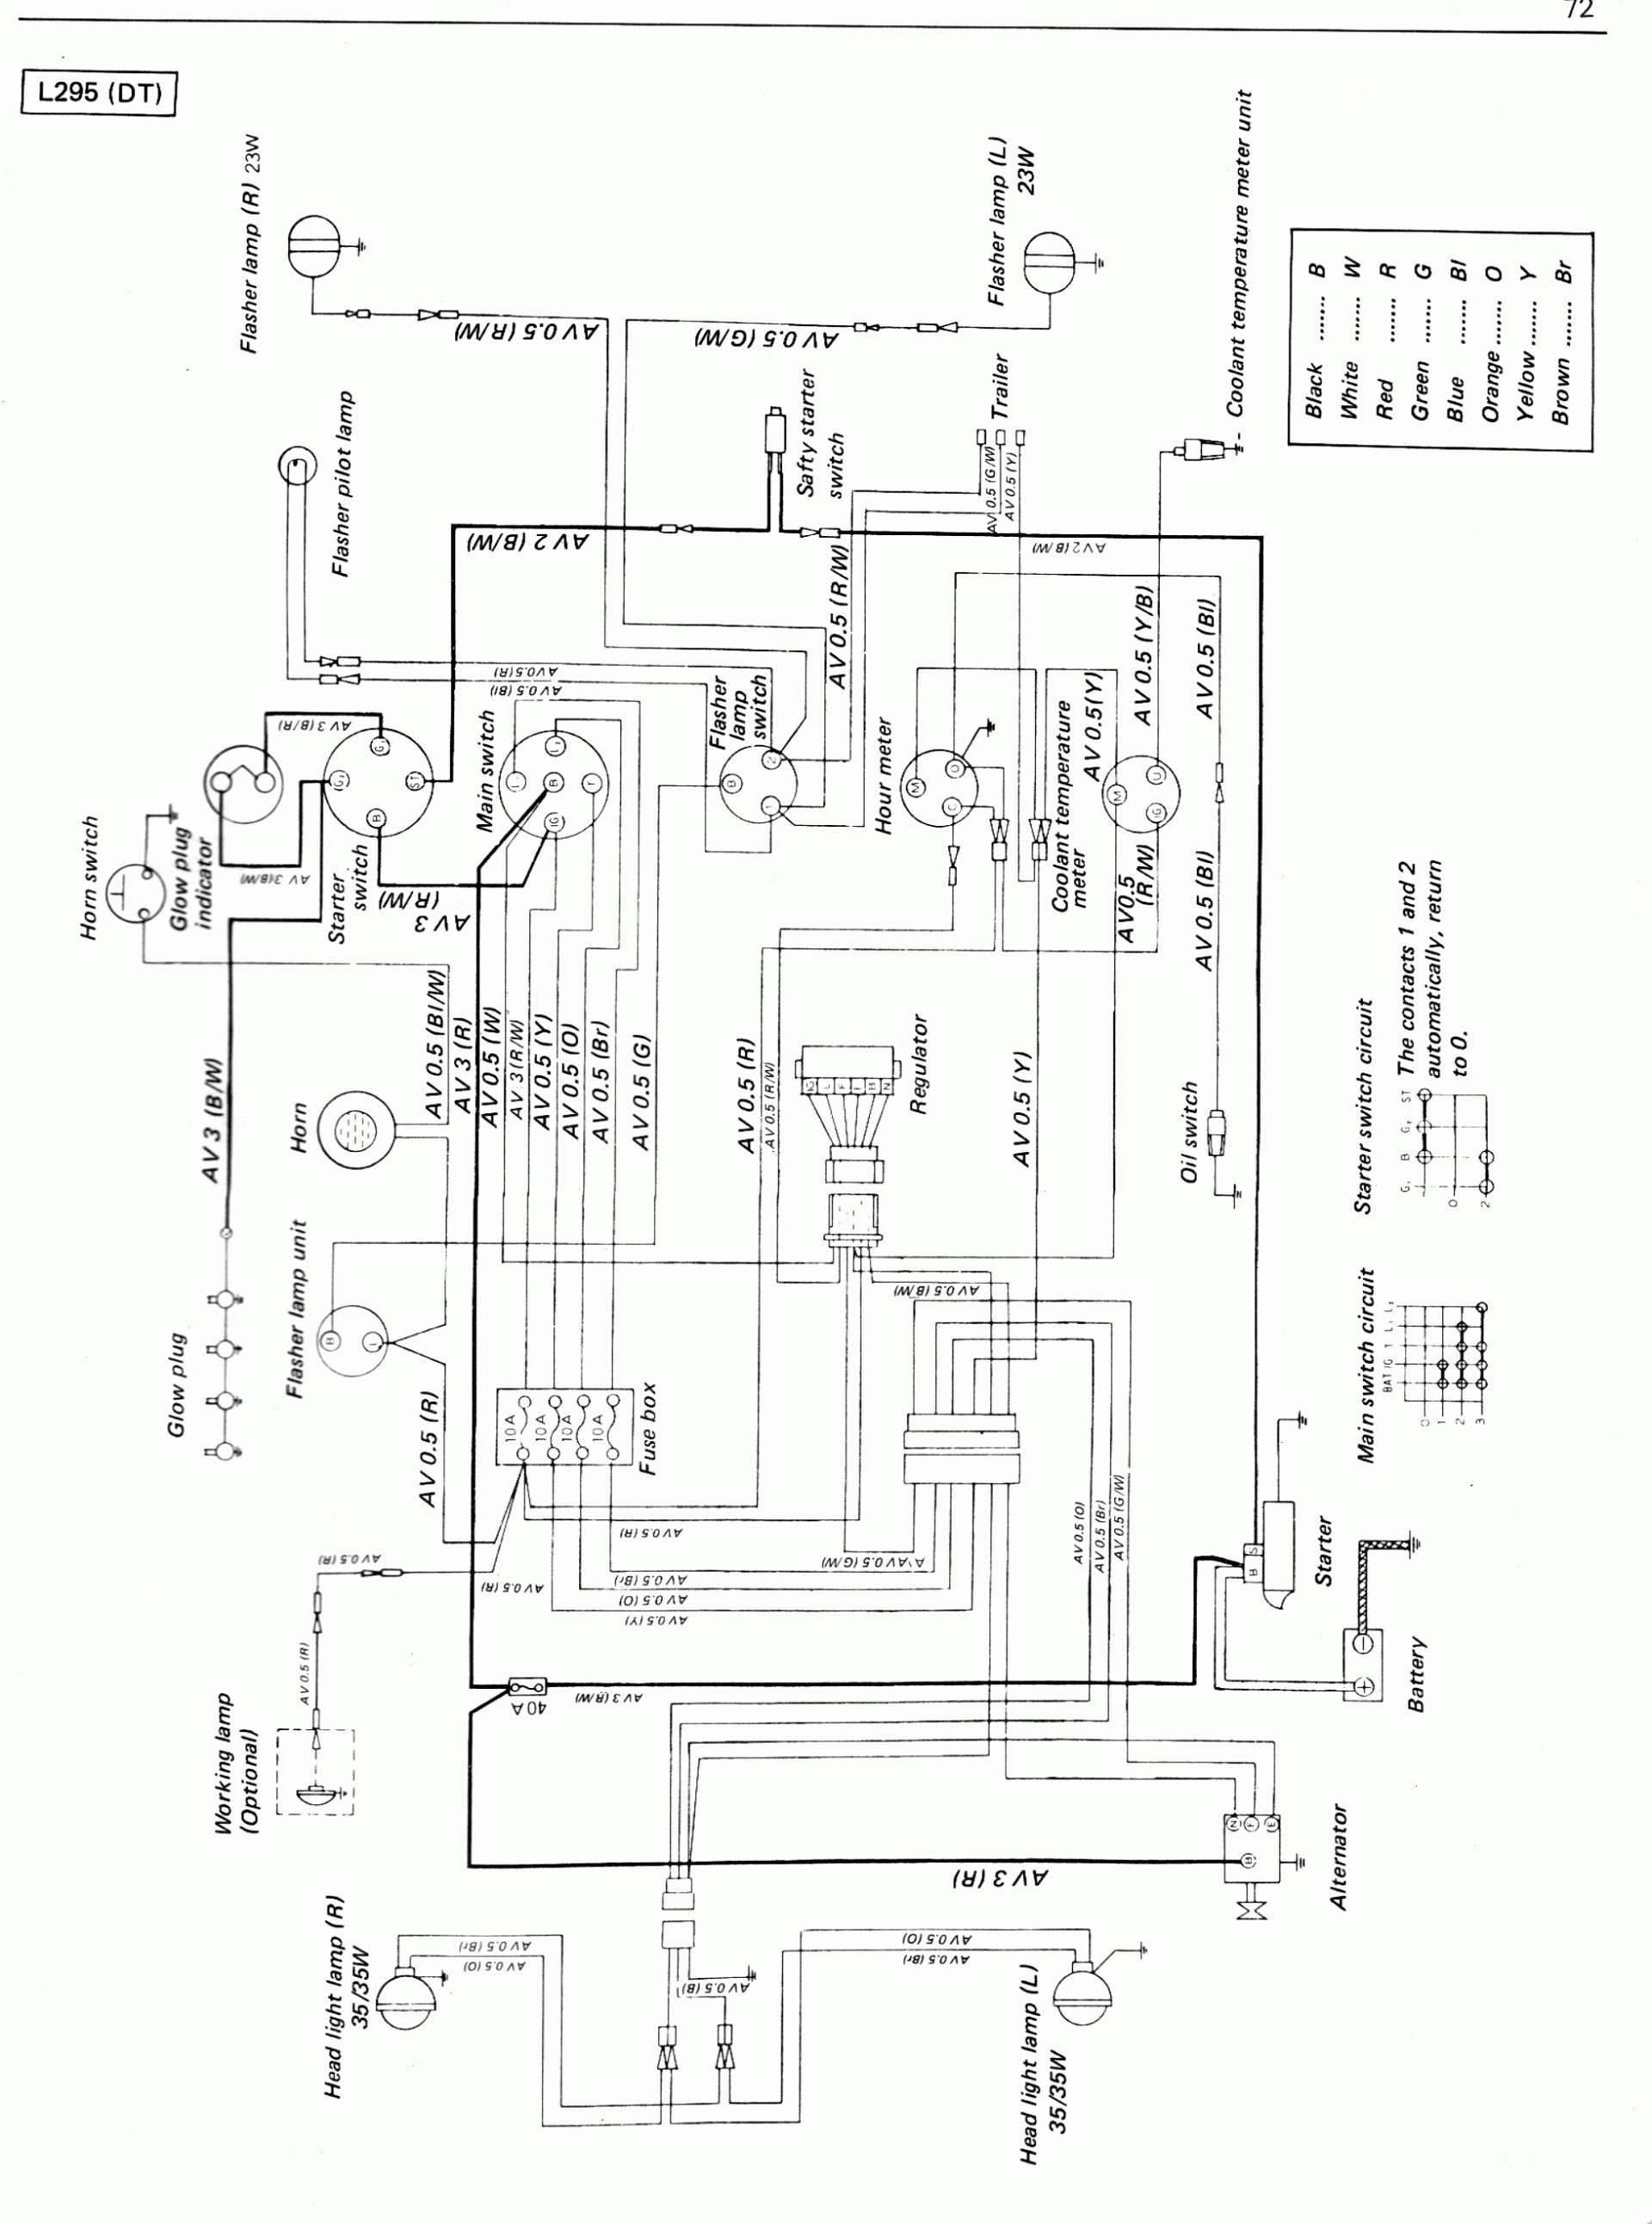 Kubota Tractor Wiring Diagram - Engine Mechanical Components on